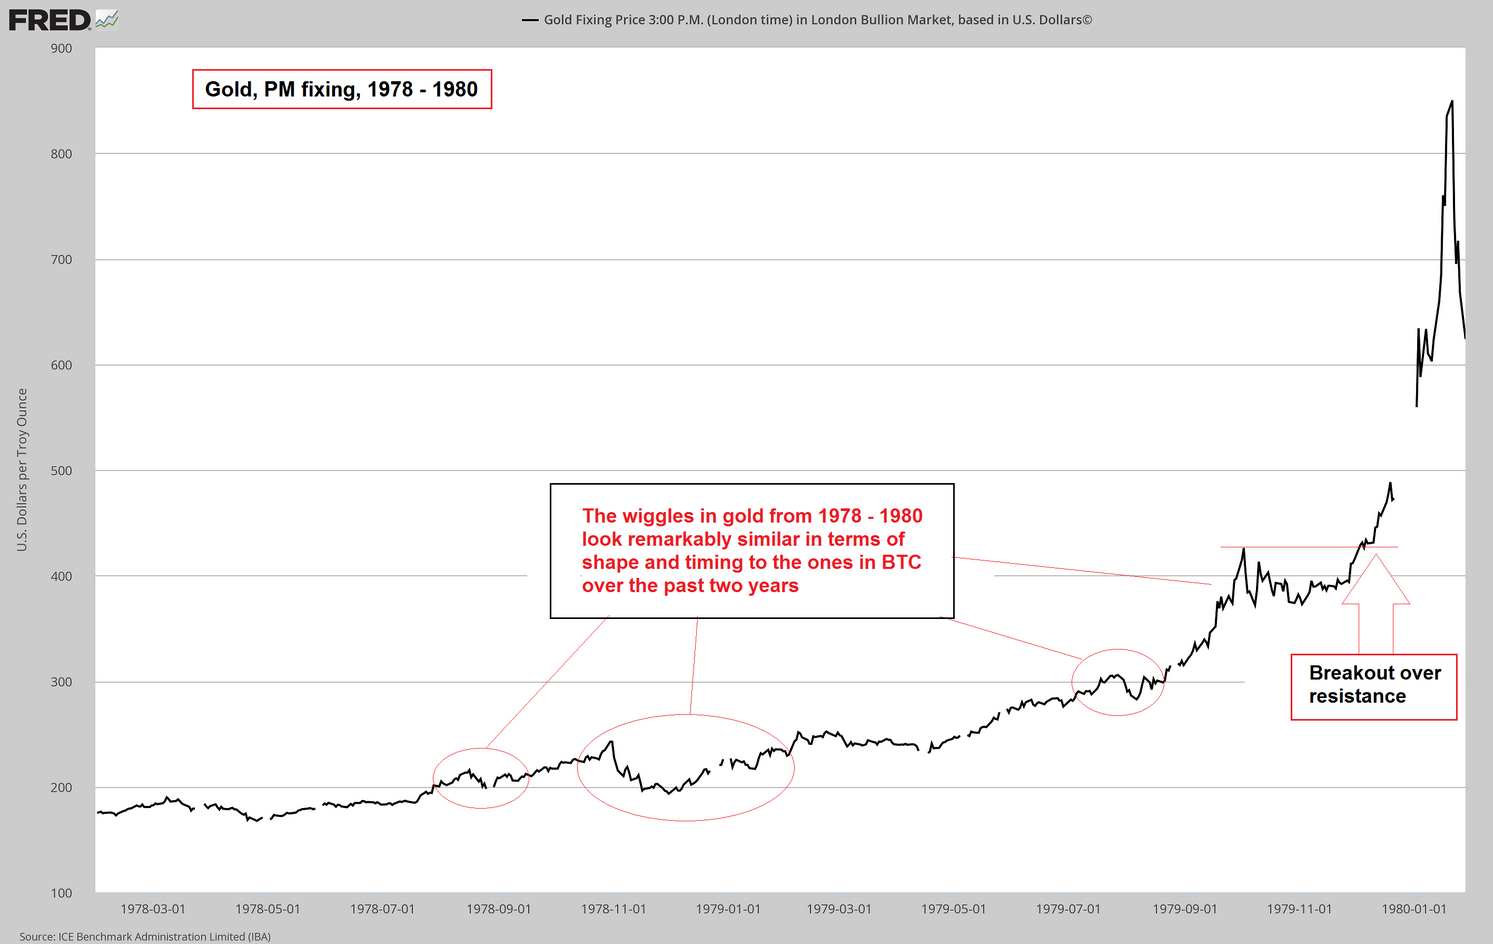 Gold Fixing Price 1978-1980